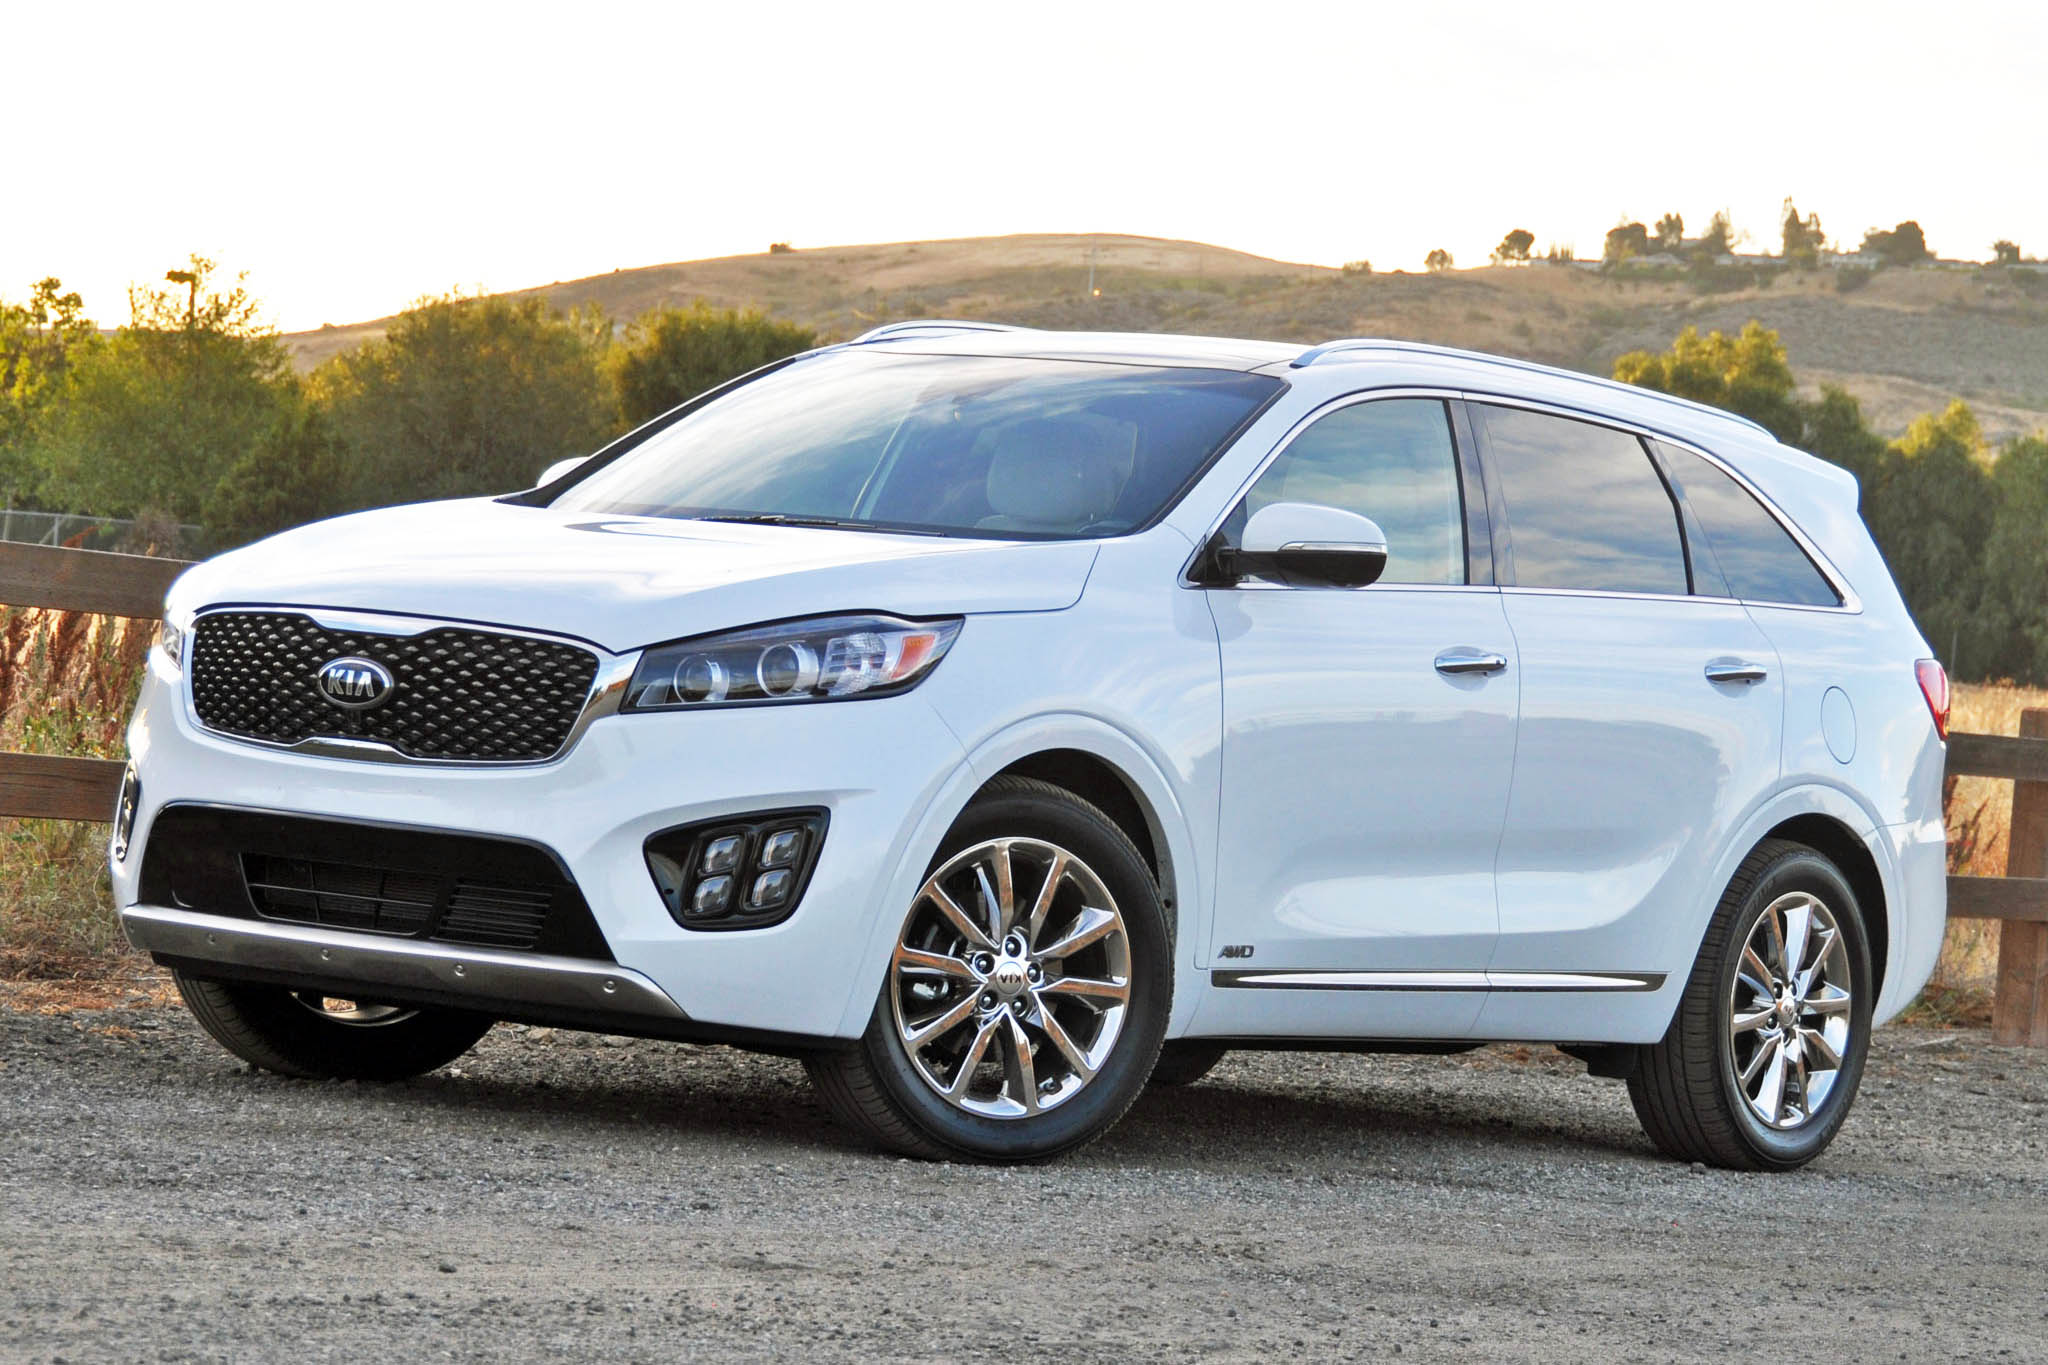 vision kia used lx detail sorento motors at hankook sorrento fwd